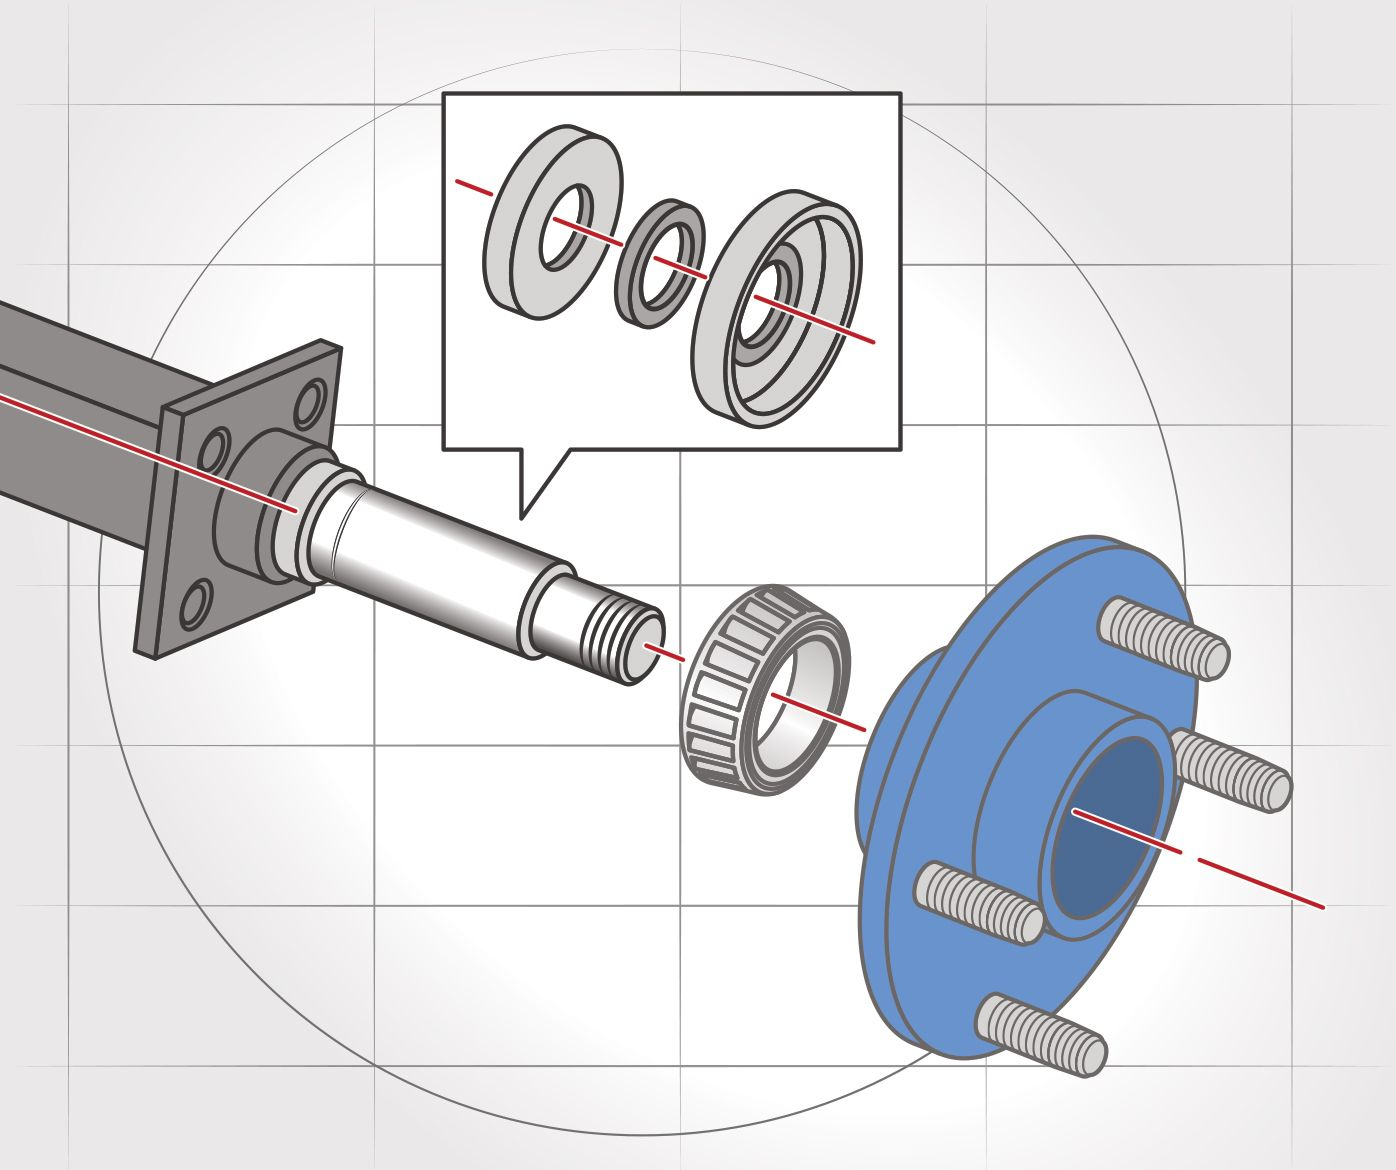 medium resolution of properly servicing your trailer wheel bearings will keep your rig rolling